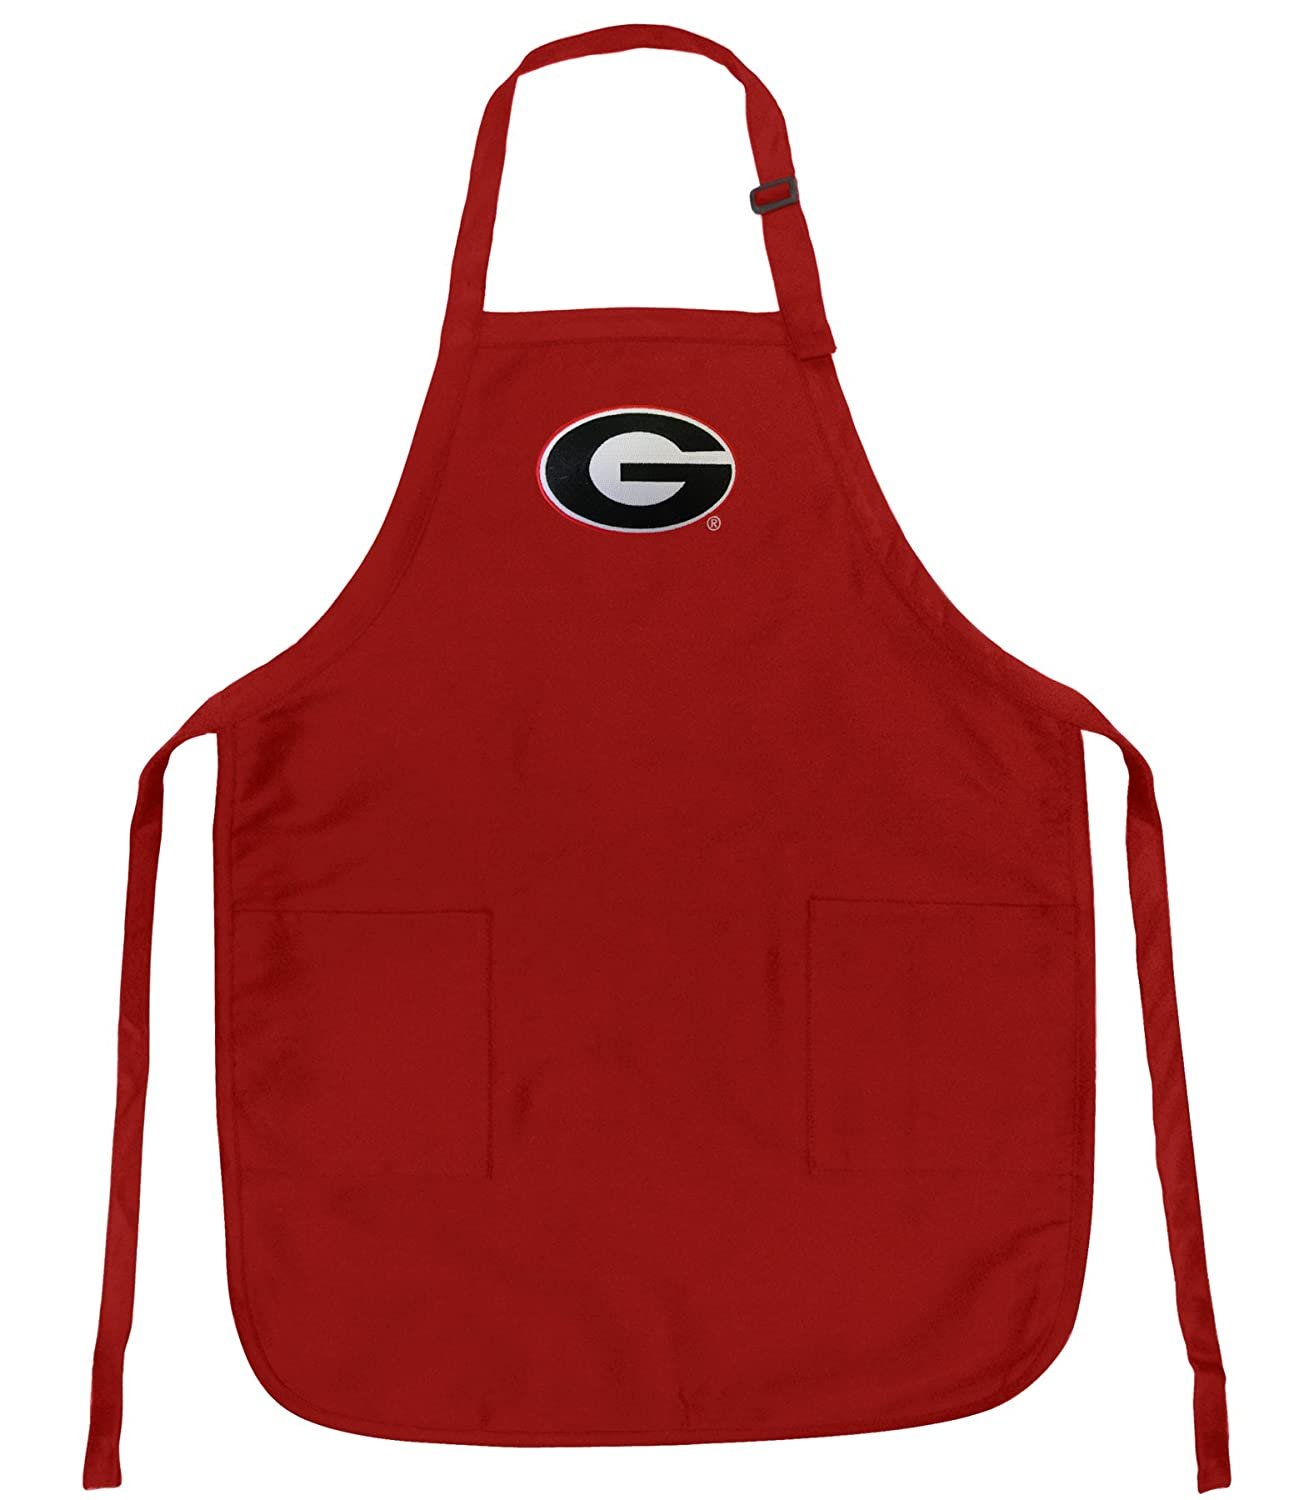 Georgia Bulldogs Apron OFFICIAL University of Georgia UGA TOP RATED FULL SIZE Adjustable Neck with Pockets assorted childs apron  case of 432